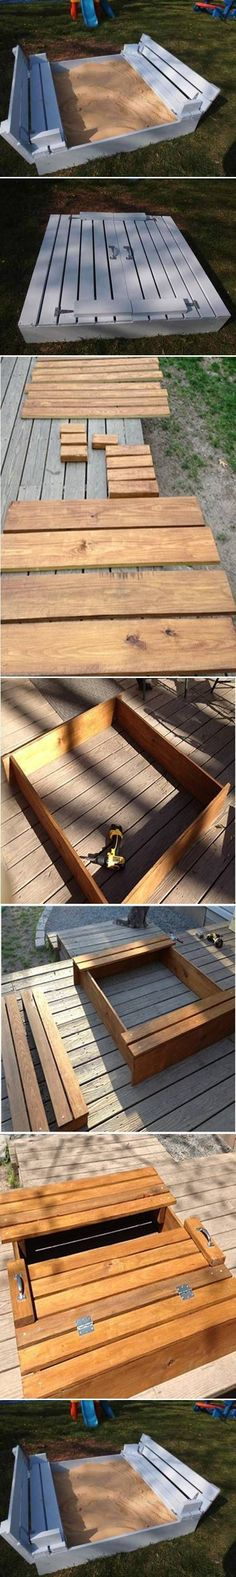 DIY Sandbox! Love this.